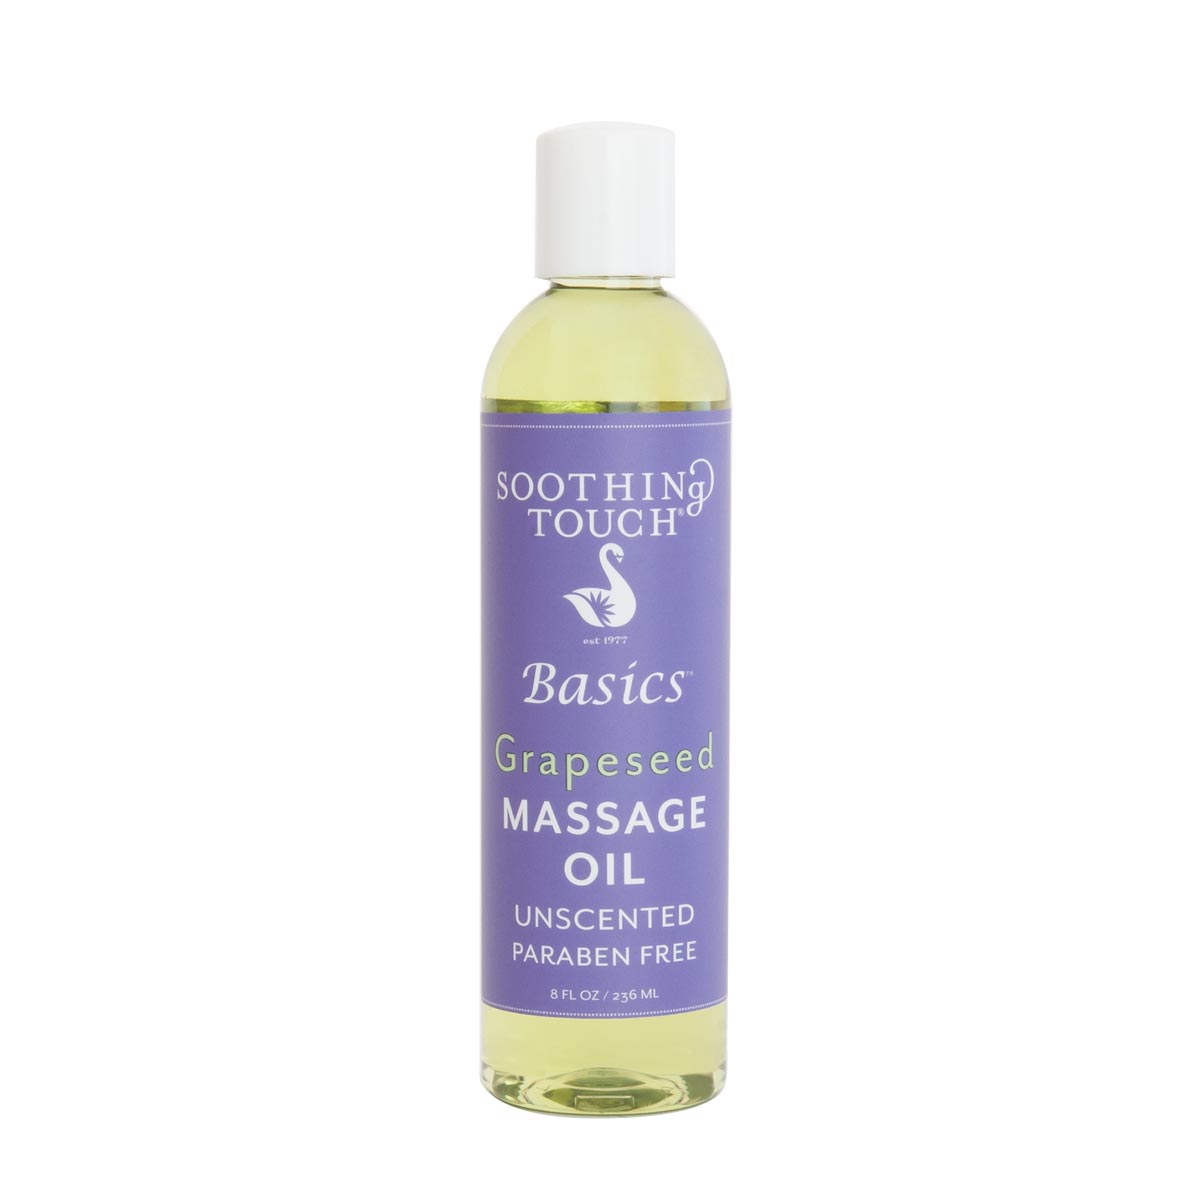 Grapeseed oil for massage